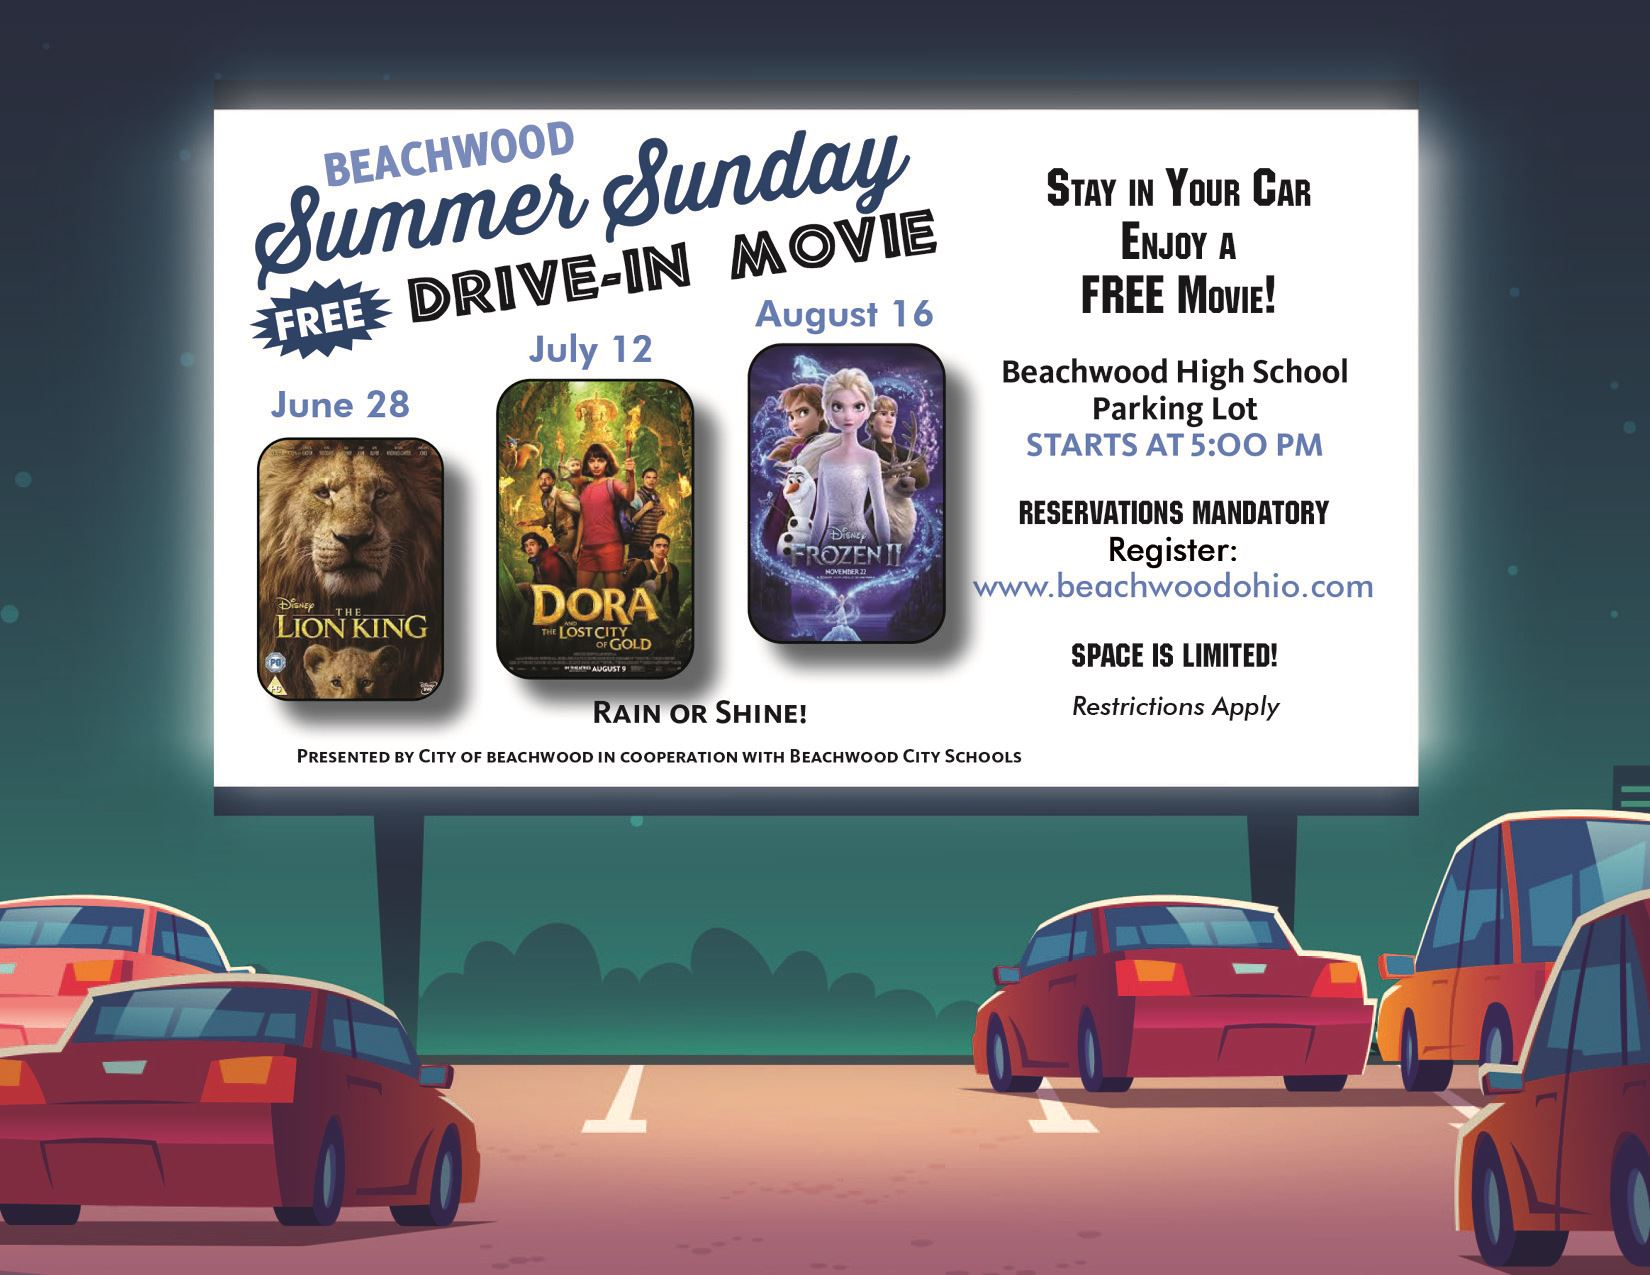 Summer Sunday Movie Flyer 2020